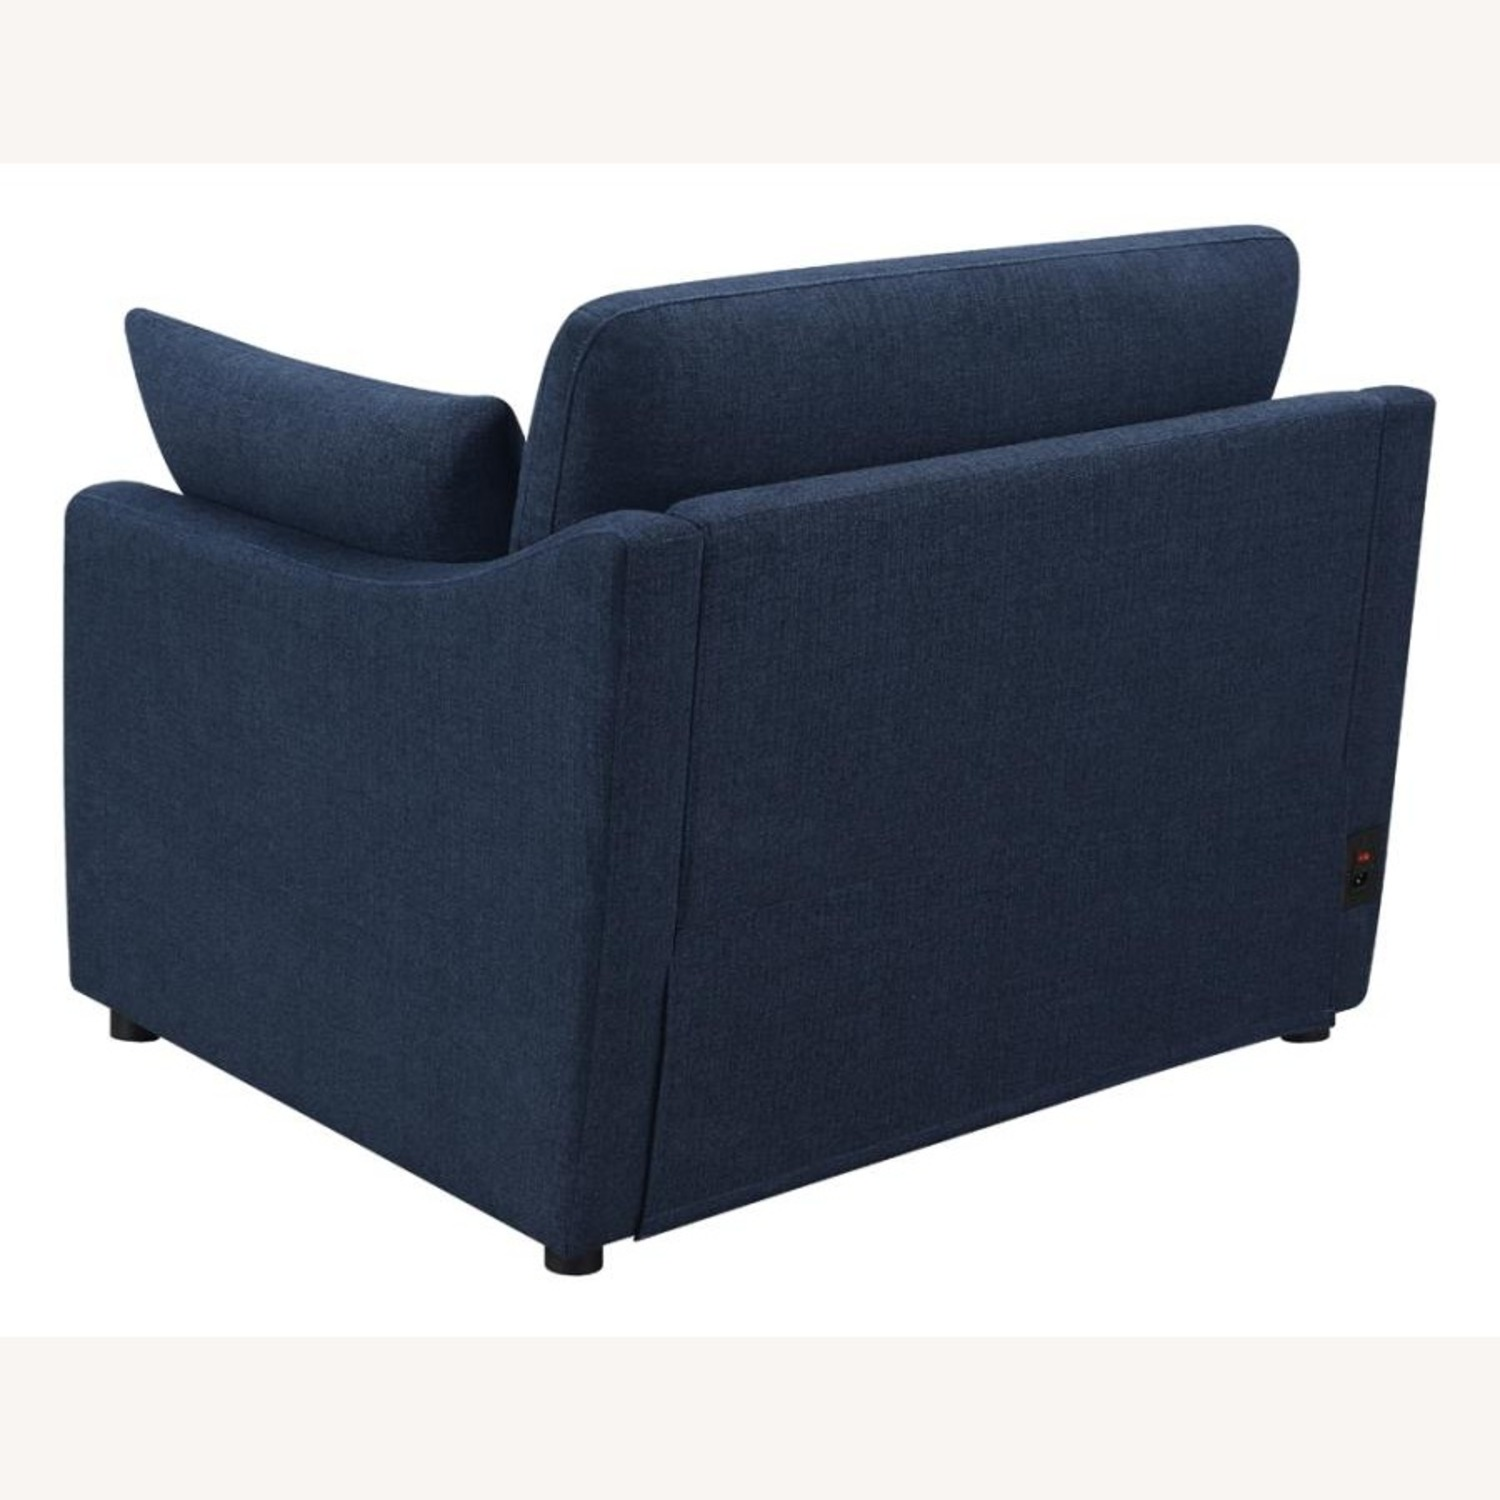 Power Recliner In Linen-Like Midnight Blue Fabric - image-2